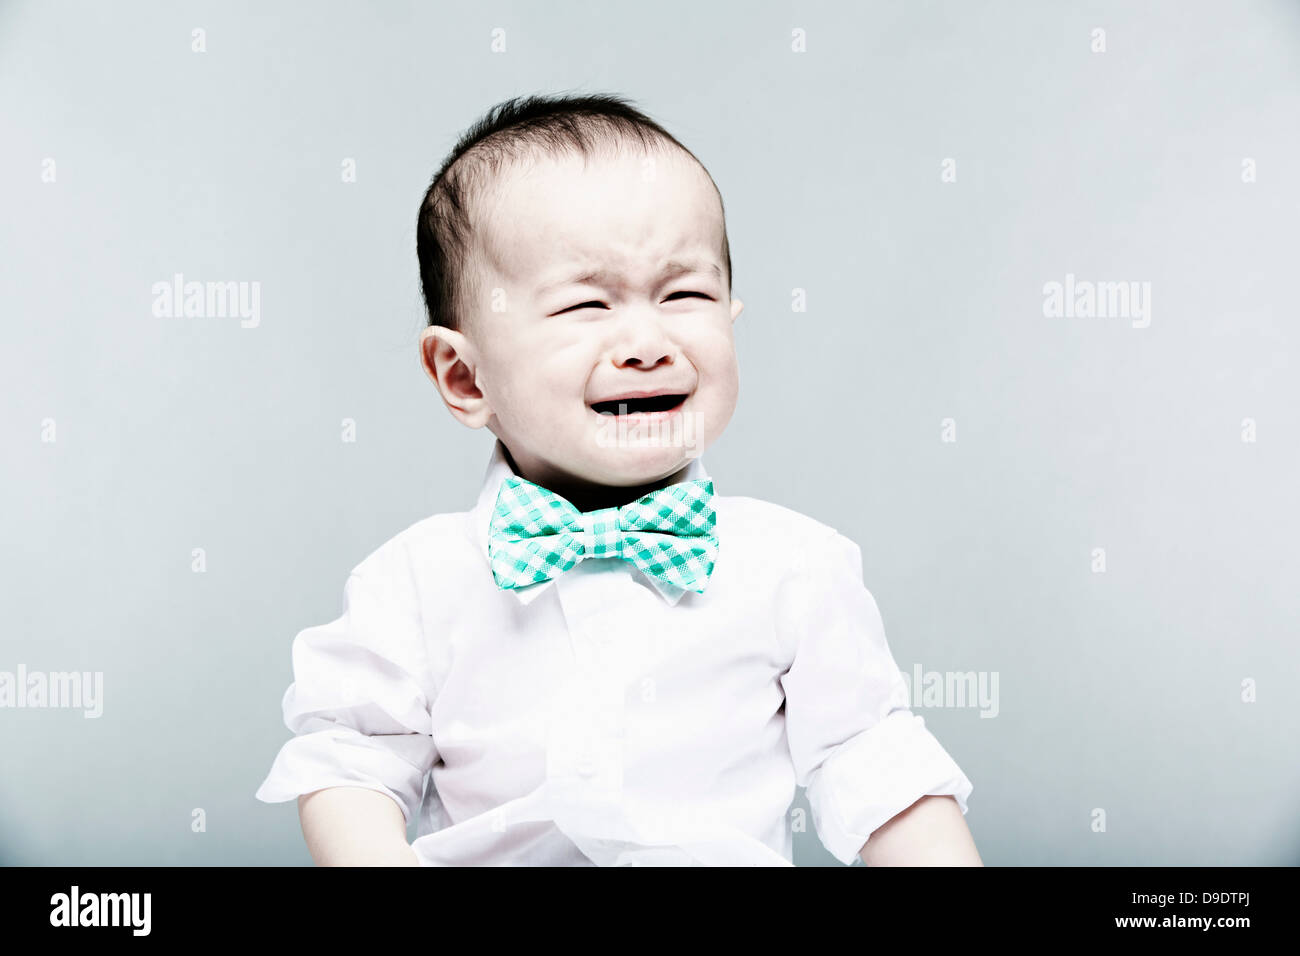 Portrait of baby boy wearing shirt and bow tie, crying - Stock Image